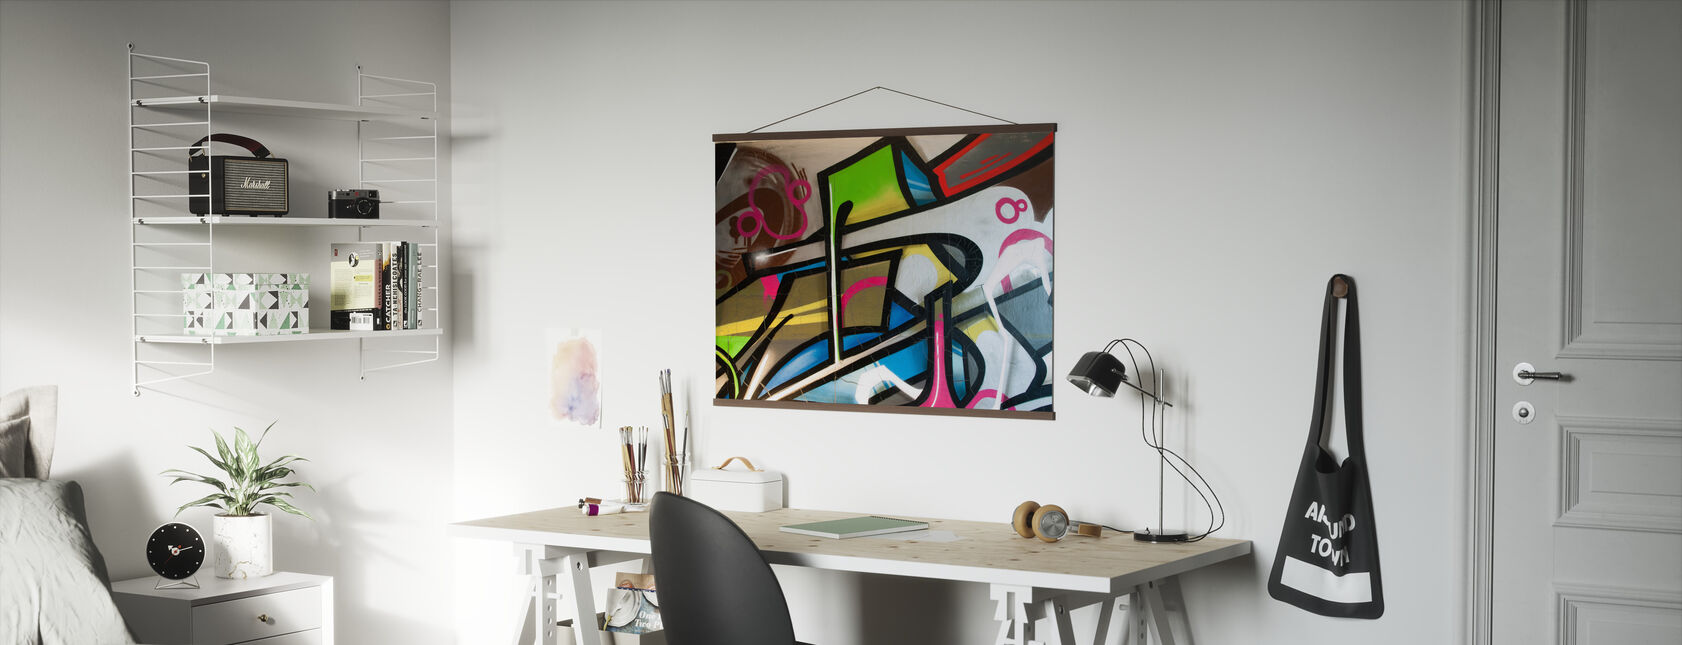 Colorful Graffiti - Poster - Office